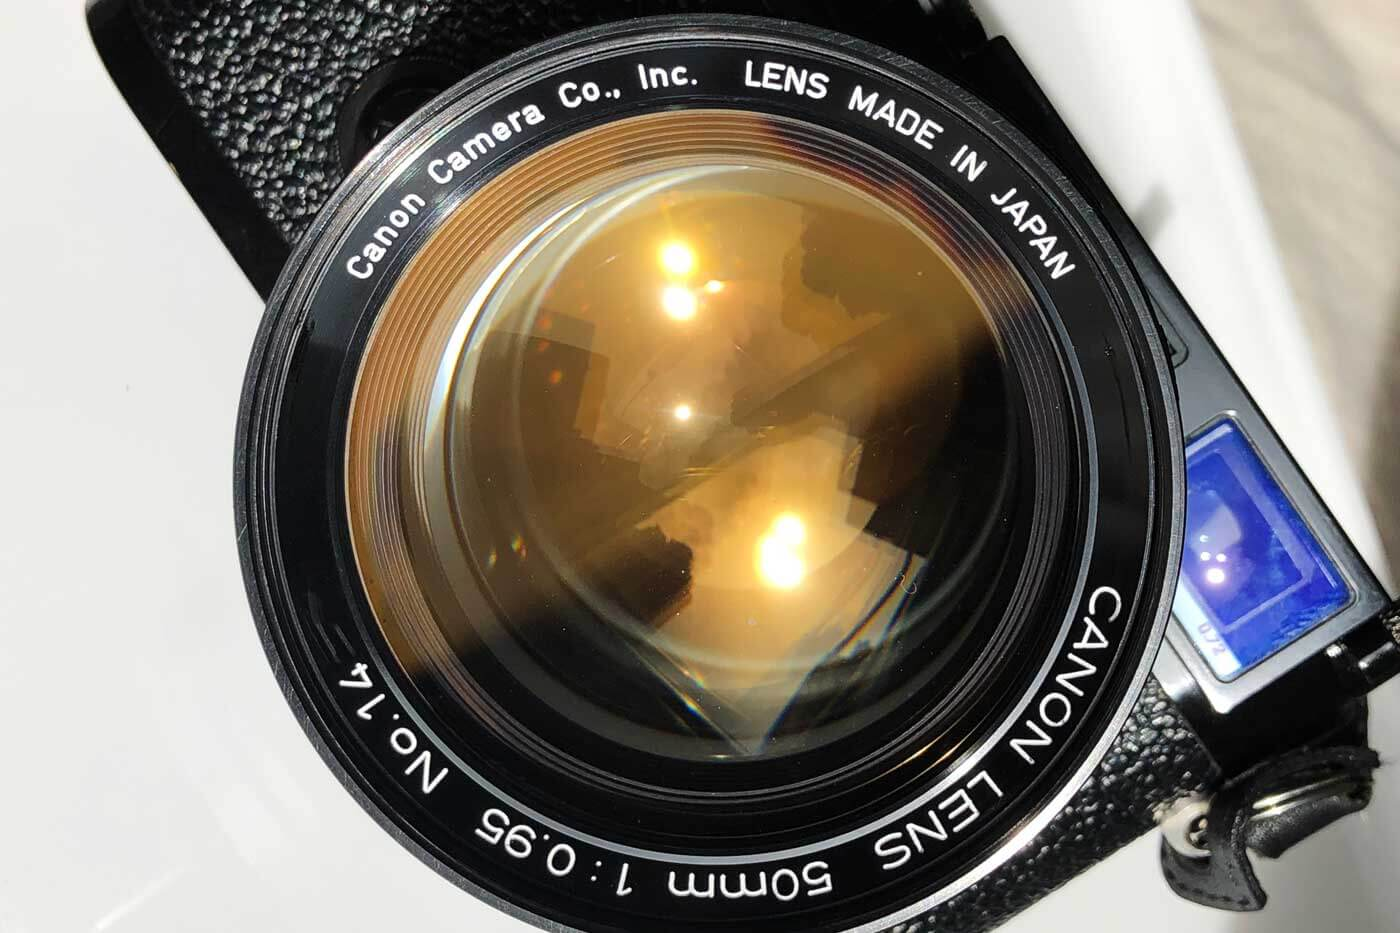 Canon-50mm-50-f0.95-0.95-fastest-lens-fast-bokeh-dream-dreamy-lens-review-character-film-performance-leica-m-mount-converted-coating-colour-amber-engravement-barrel